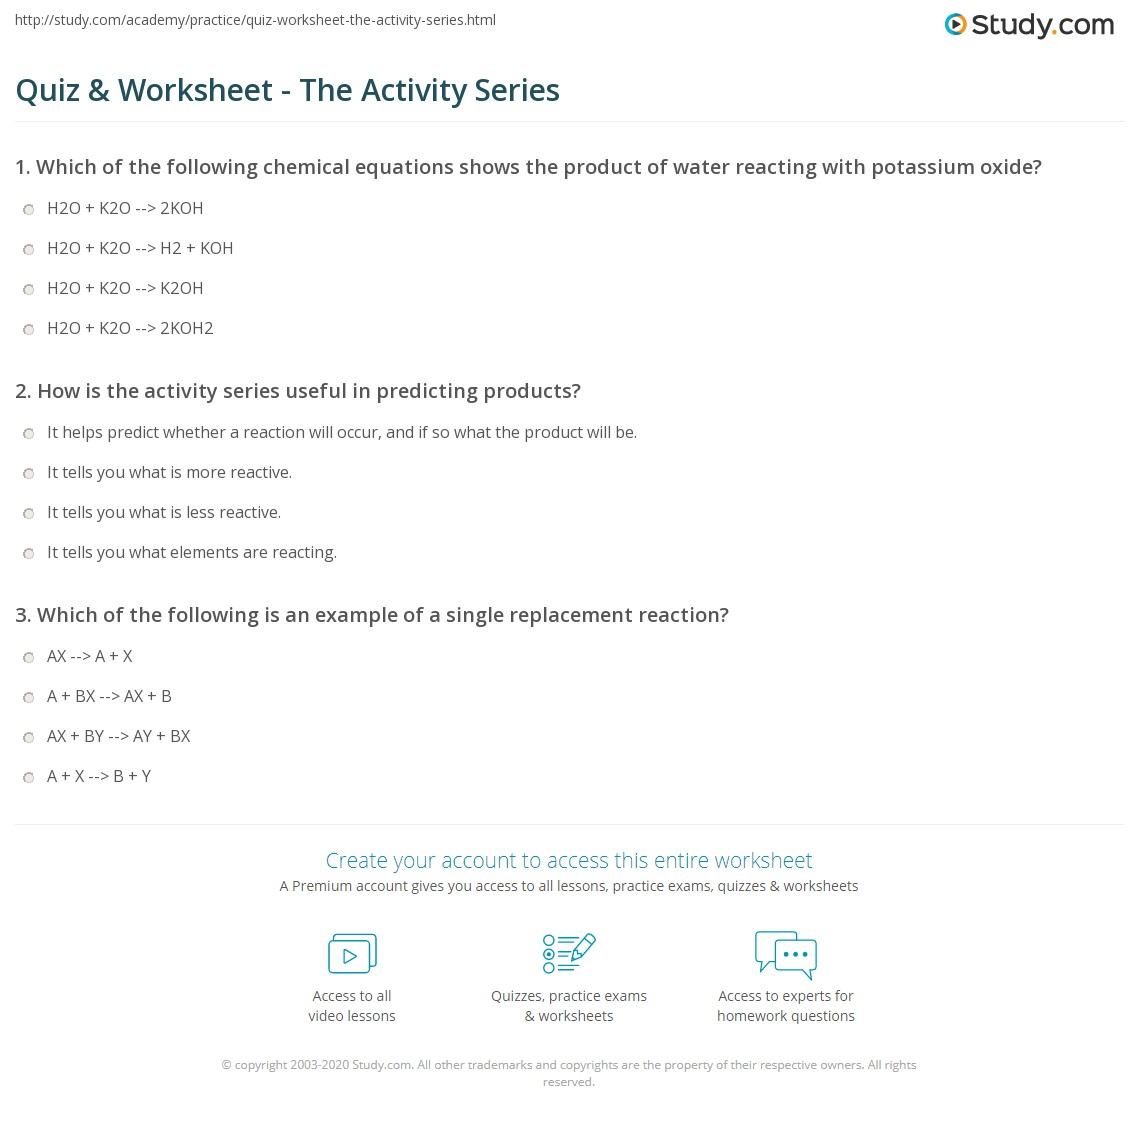 Aldiablosus  Ravishing Quiz Amp Worksheet  The Activity Series  Studycom With Exquisite Print The Activity Series Predicting Products Of Single Displacement Reactions Worksheet With Delectable Common Denominator Worksheets Also Free Printable Budget Worksheets In Addition Reading Worksheets For Nd Grade And Types Of Chemical Reaction Worksheet Ch  As Well As Pythagorean Theorem Worksheet Pdf Additionally Diagramming Sentences Worksheets From Studycom With Aldiablosus  Exquisite Quiz Amp Worksheet  The Activity Series  Studycom With Delectable Print The Activity Series Predicting Products Of Single Displacement Reactions Worksheet And Ravishing Common Denominator Worksheets Also Free Printable Budget Worksheets In Addition Reading Worksheets For Nd Grade From Studycom